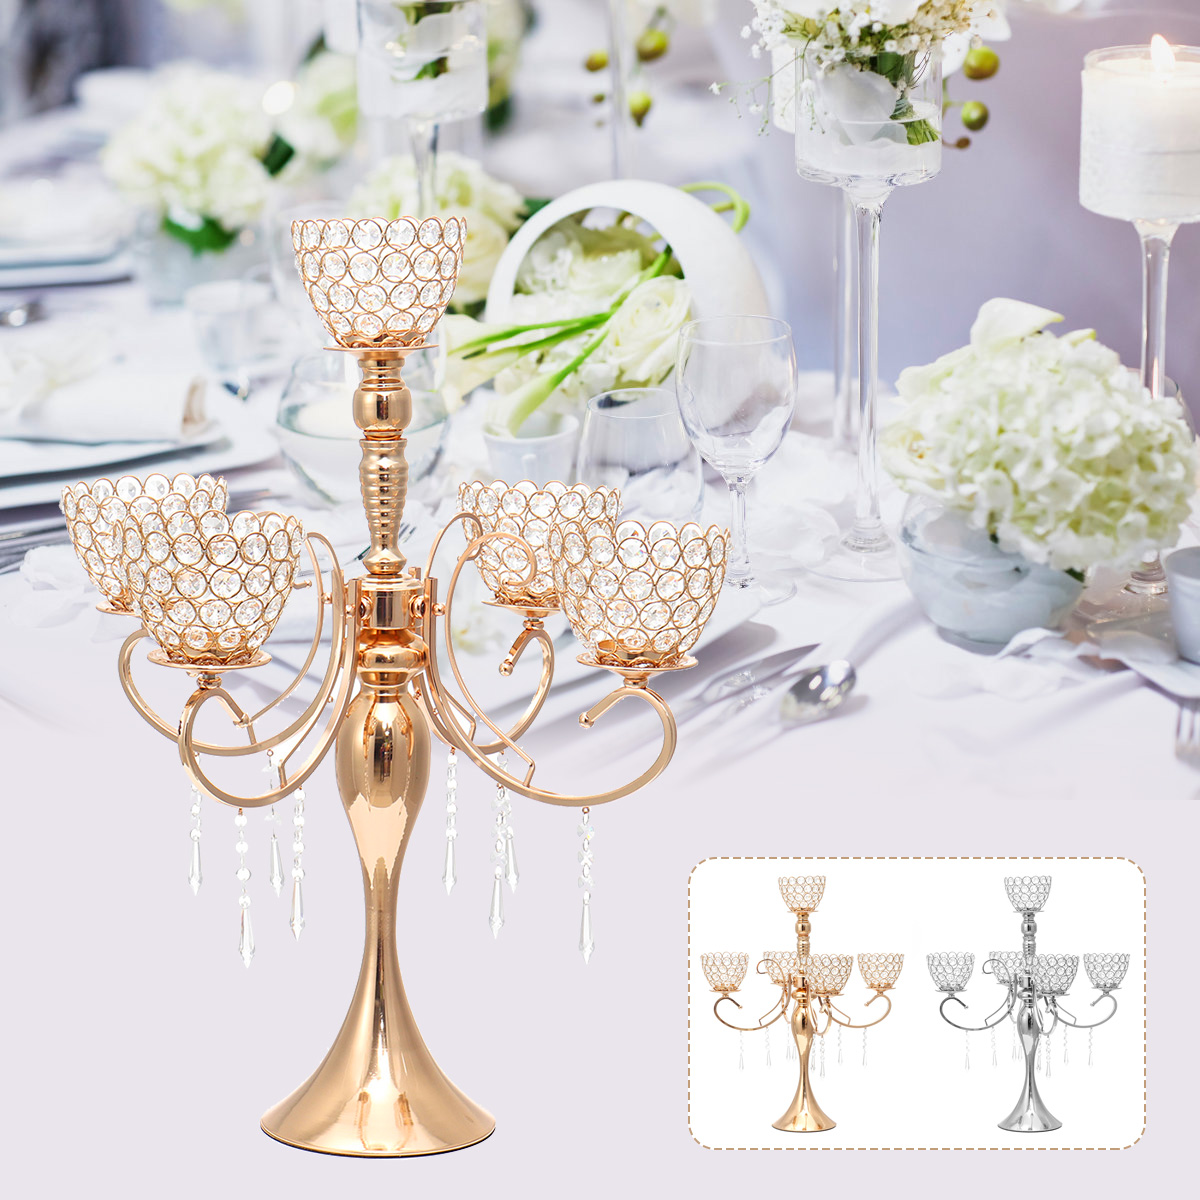 Gold Silver Candle Holders Furniture Wedding Decoration Metal Crystal Centerpiece Dining Table Candelabra Stand Home Decor Mother Day Silver Buy Online At Best Prices In Bangladesh Daraz Com Bd